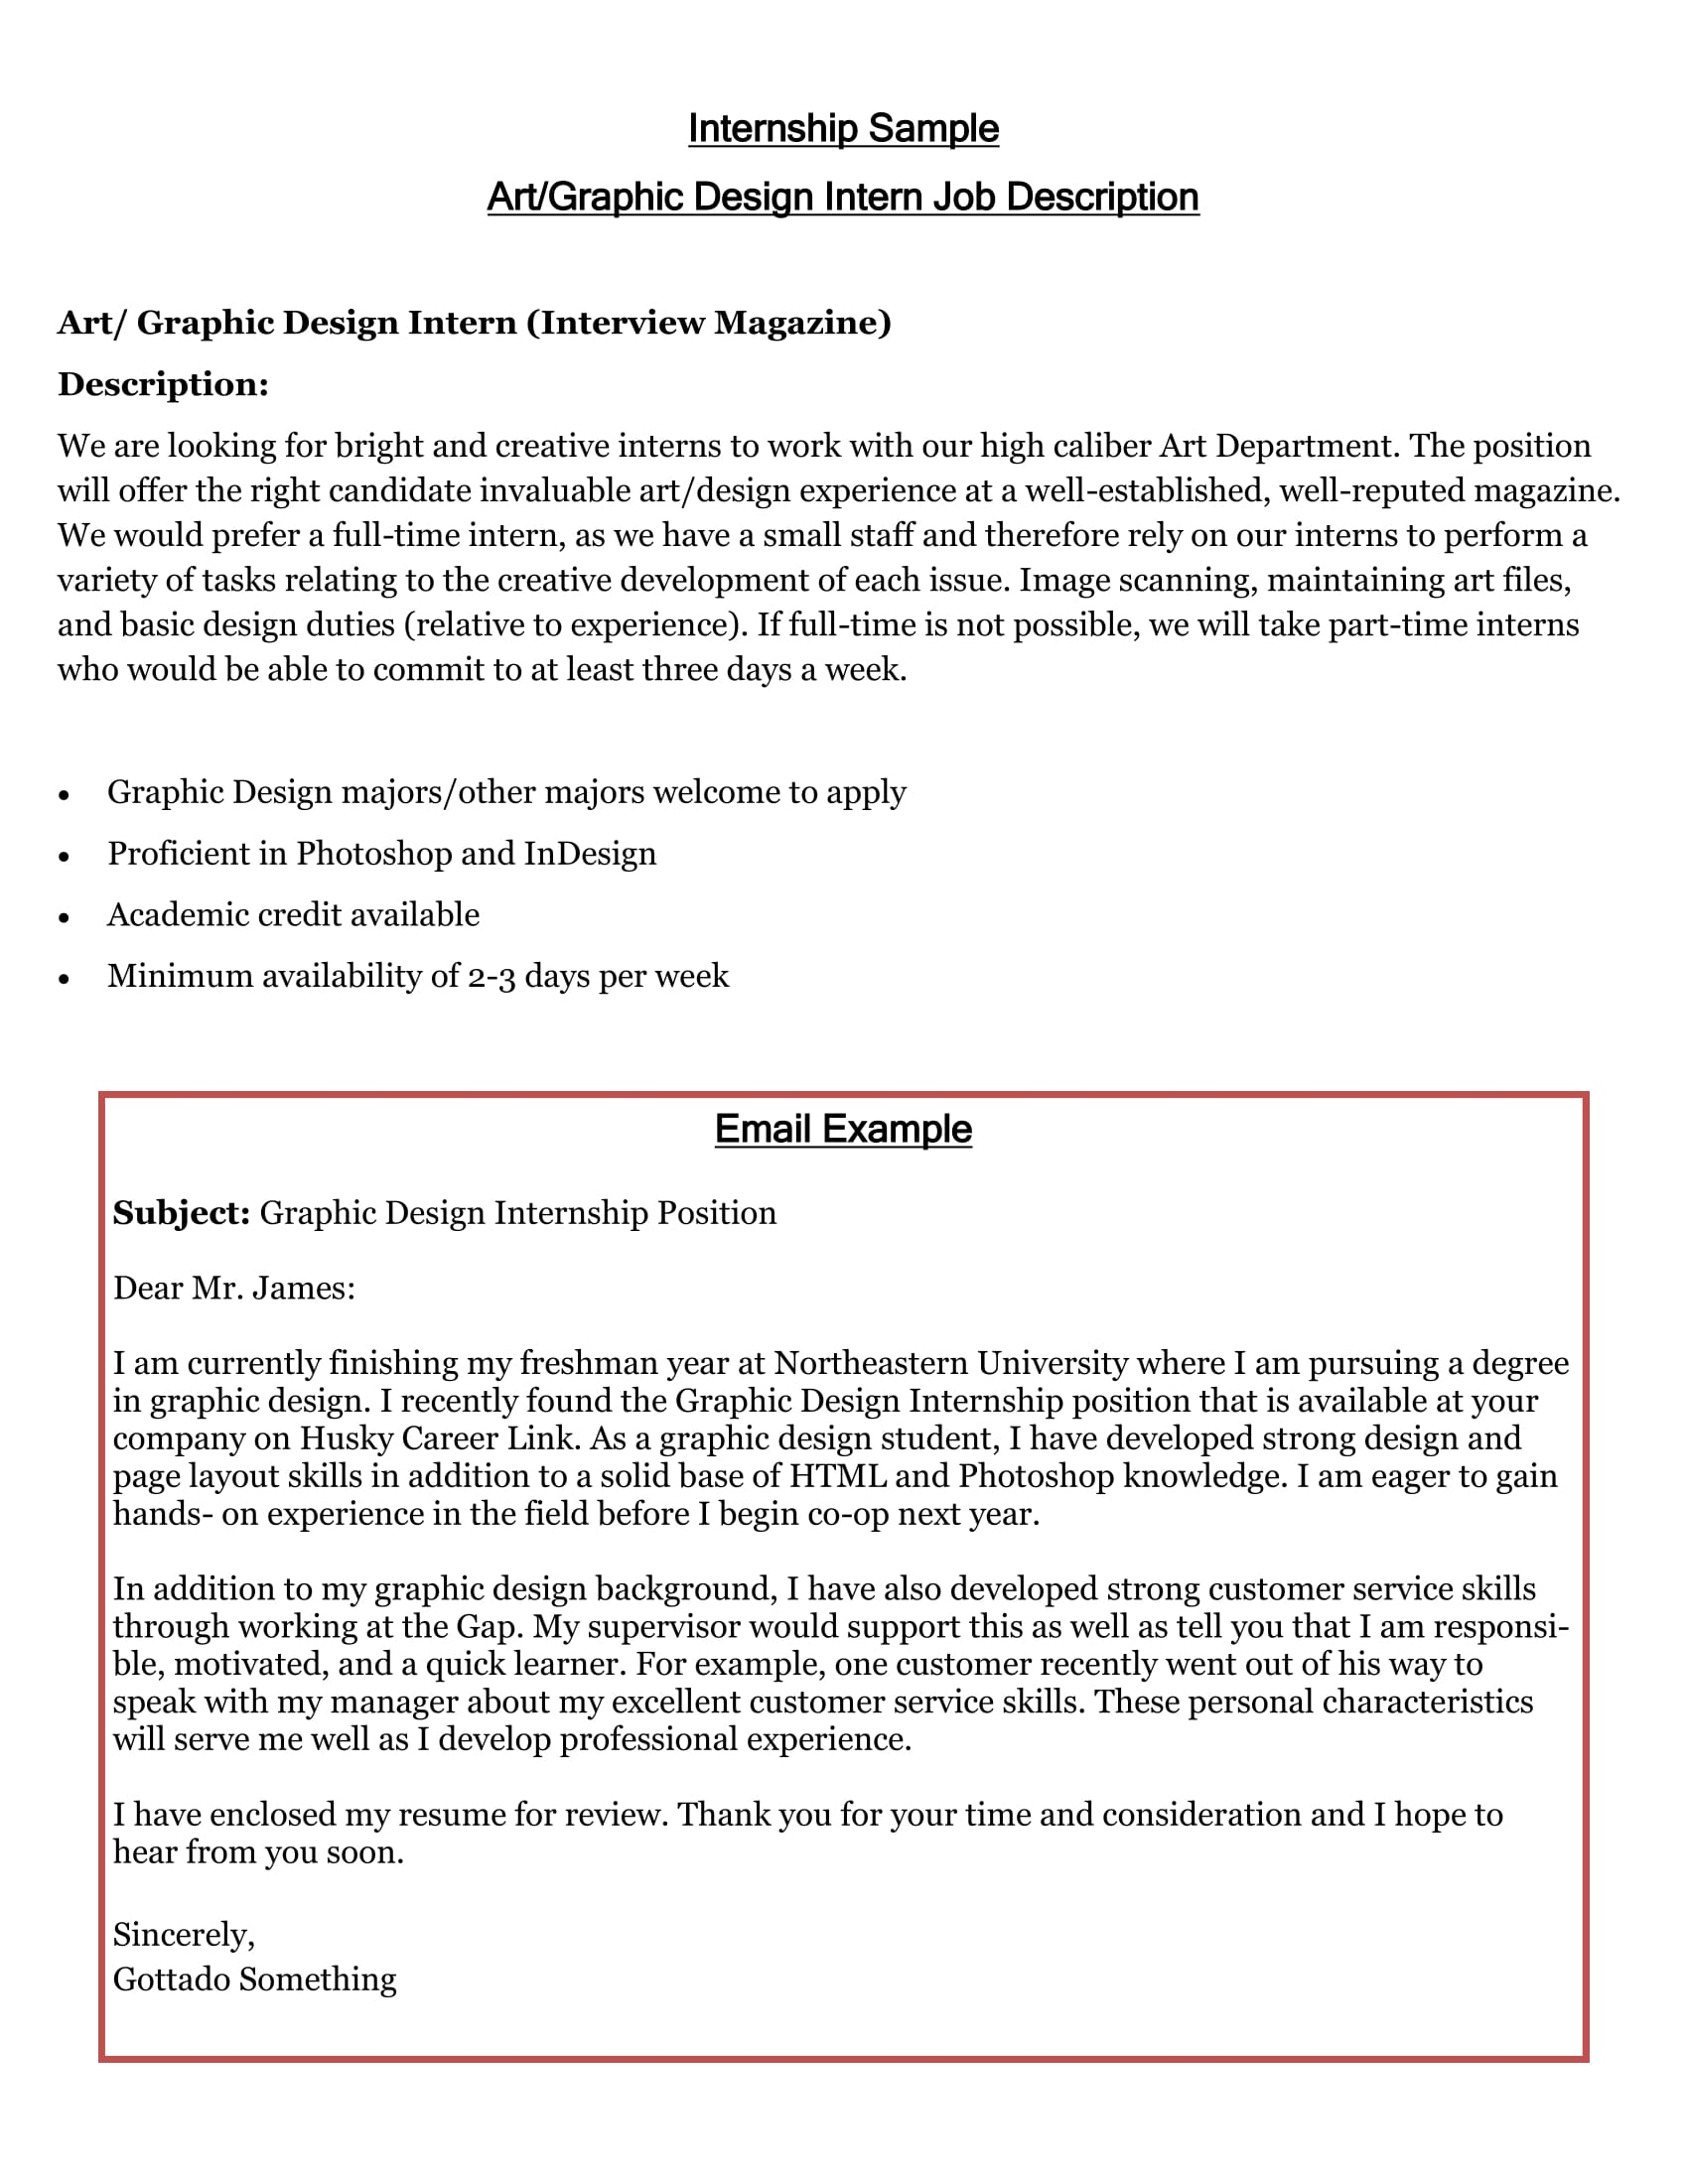 Cover Letter Examples Internship 16 Best Cover Letter Samples For Internship Wisestep